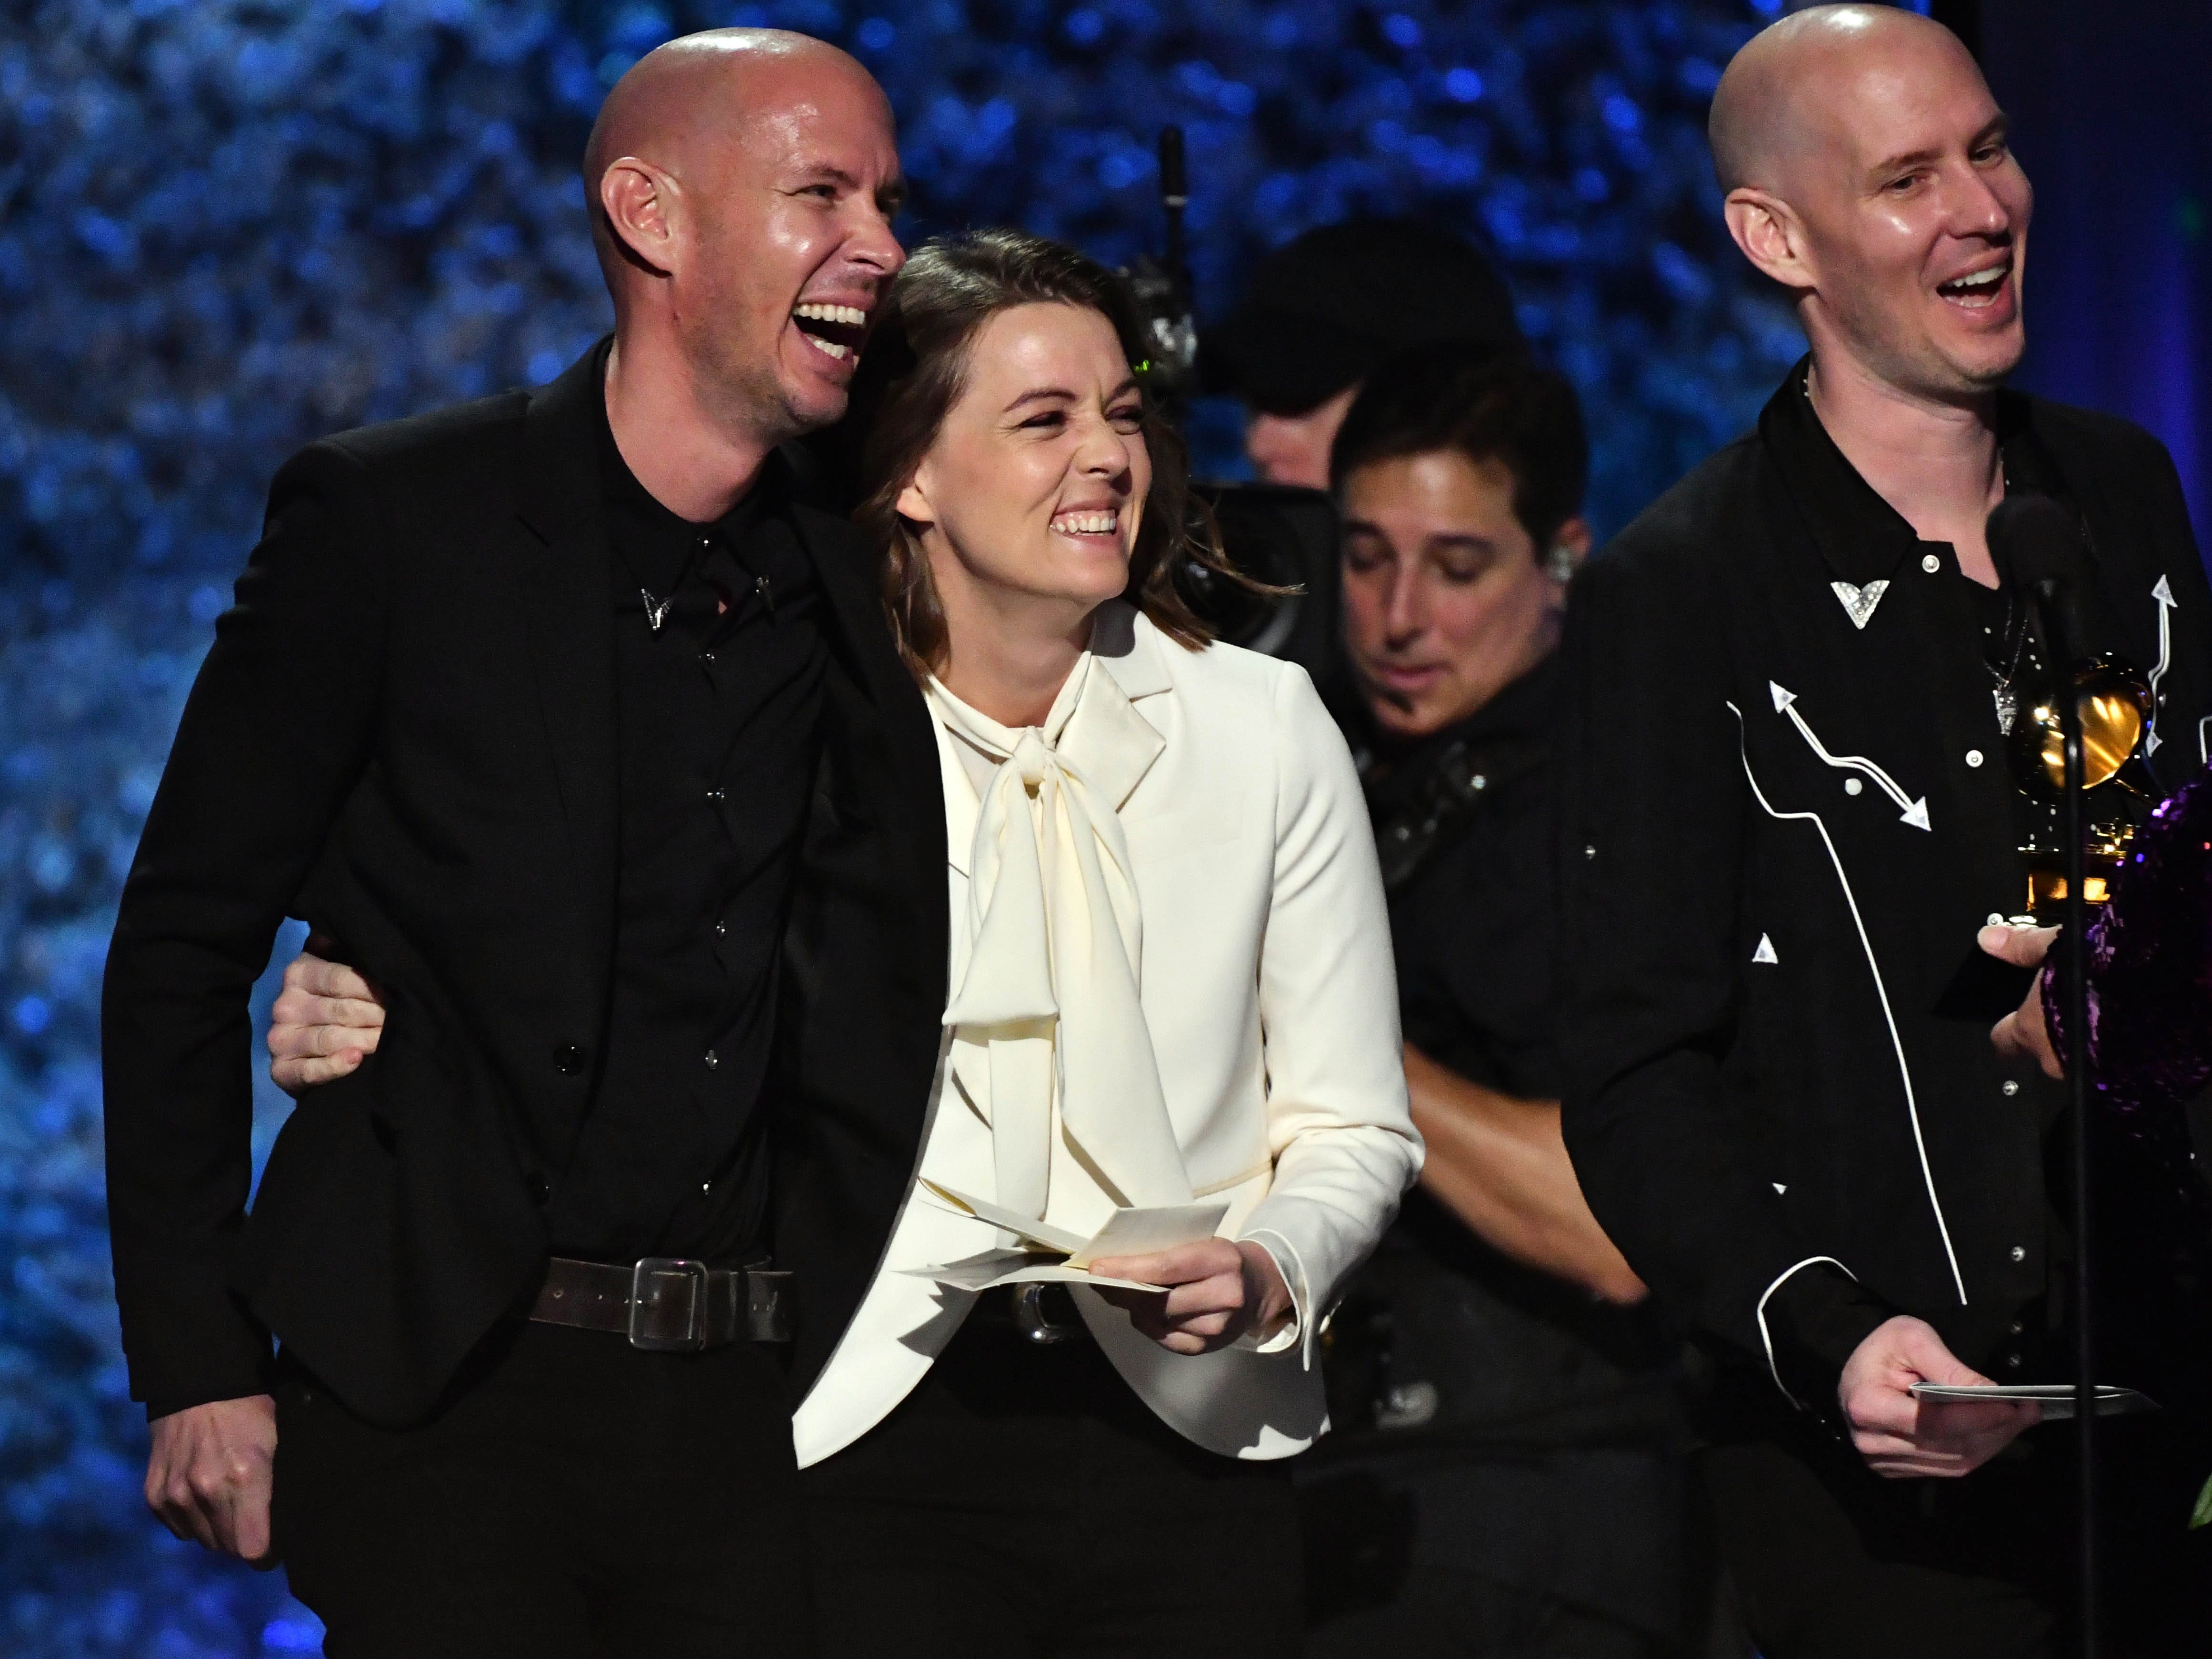 Phil Hanseroth (L), Brandi Carlile and Tim Hanseroth accept the award for  Best Americana Album for Brandi Carlile's By The Way, I Forgive You at the GRAMMY Awards Premiere Ceremony at the Microsoft Theater in Los Angeles, Calif.